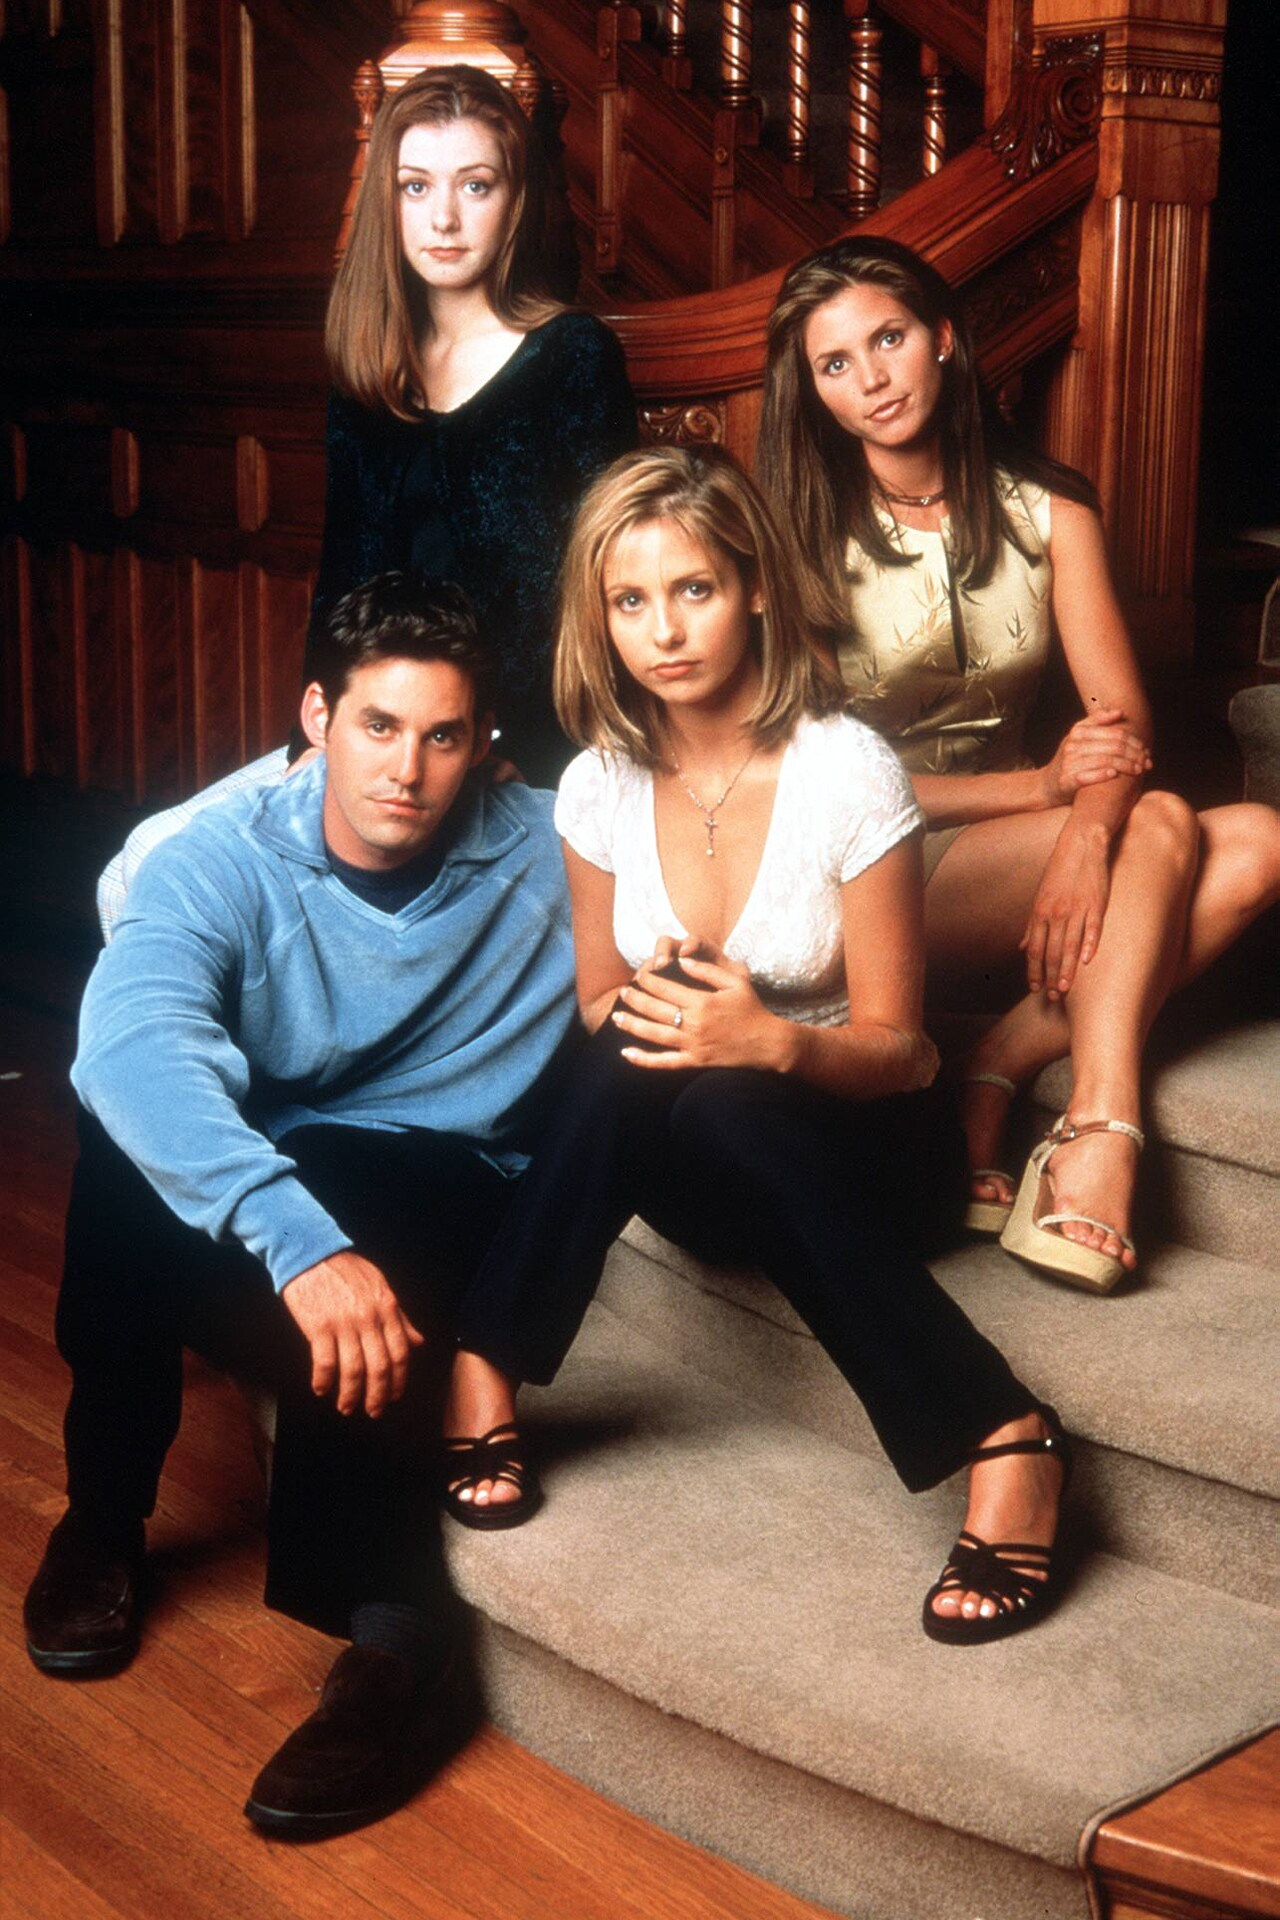 Buffy the Vampire Slayer is about to be rebooted